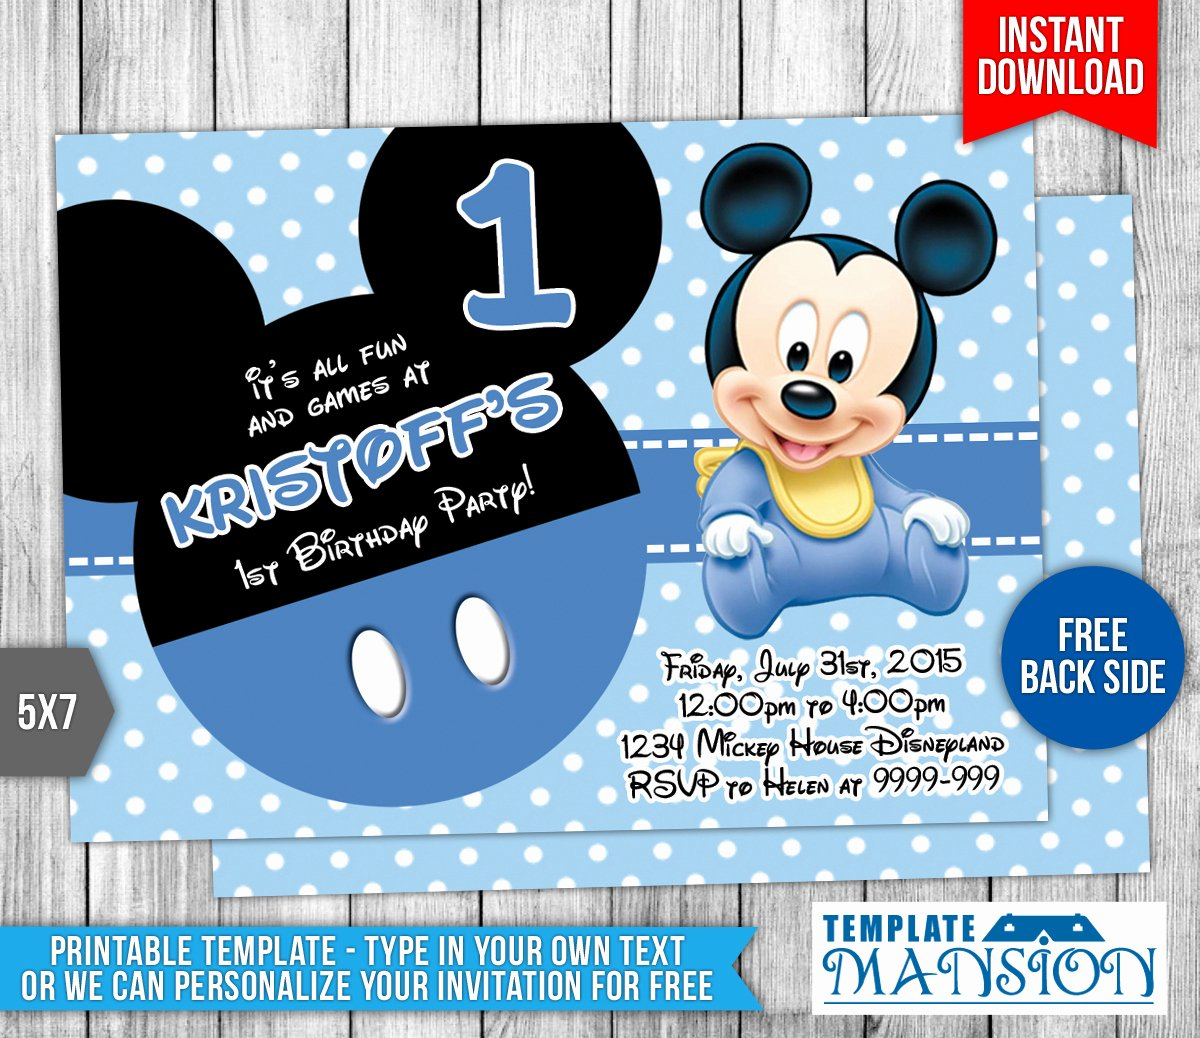 Baby Mickey Mouse Birthday Invitations Elegant Baby Mickey Mouse Birthday Invitation by Templatemansion